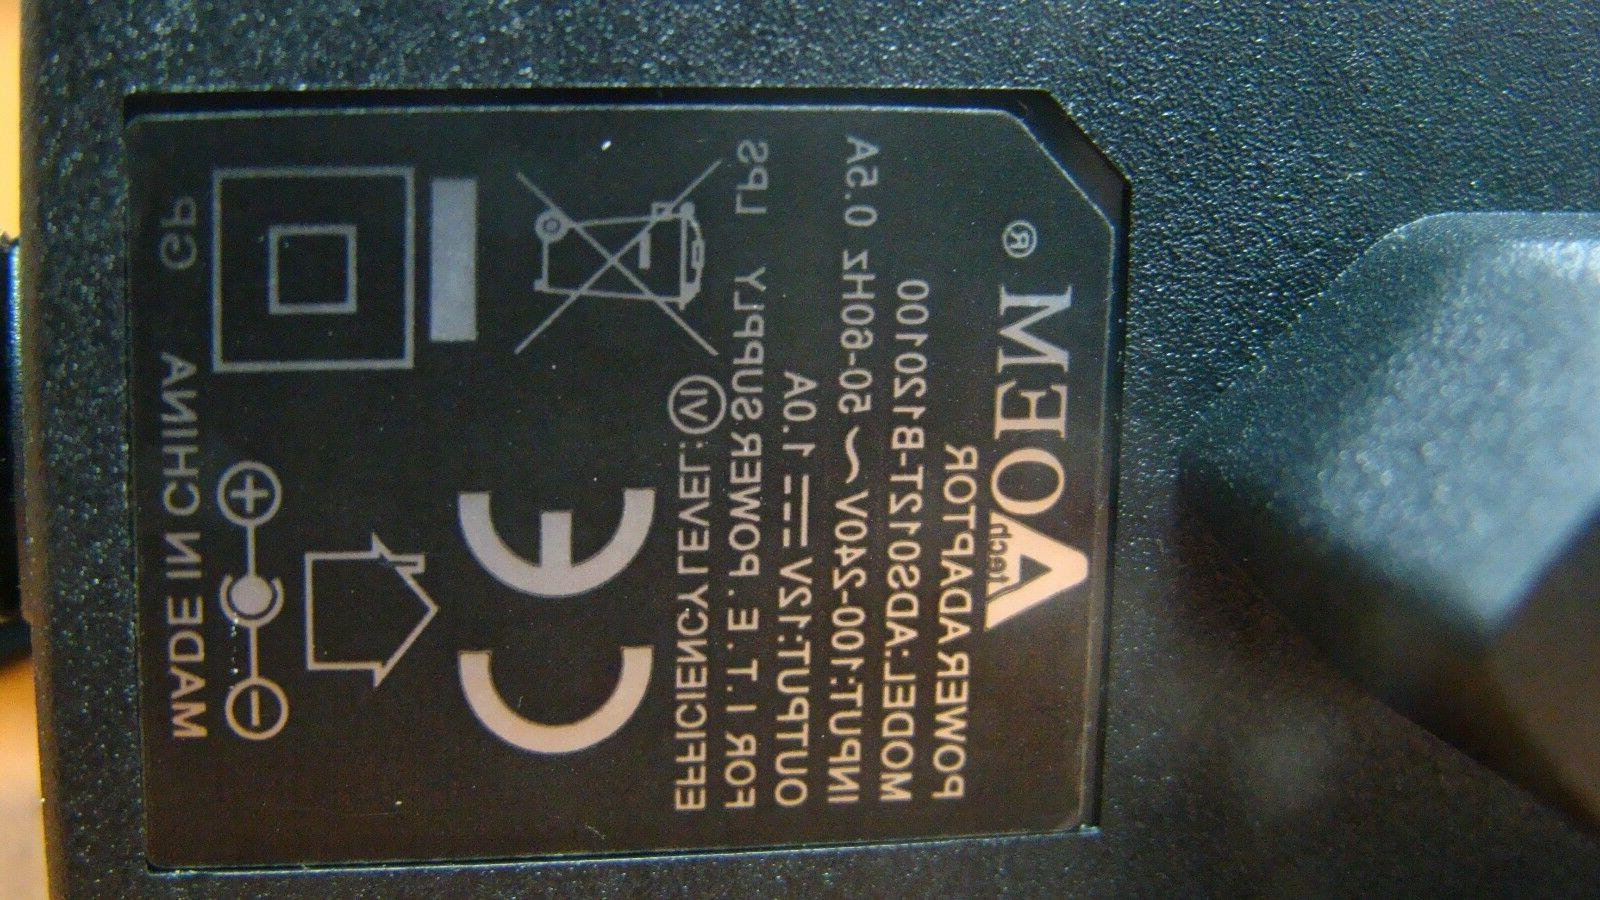 Cable Modem Euro 3.0 with CGN-AP2